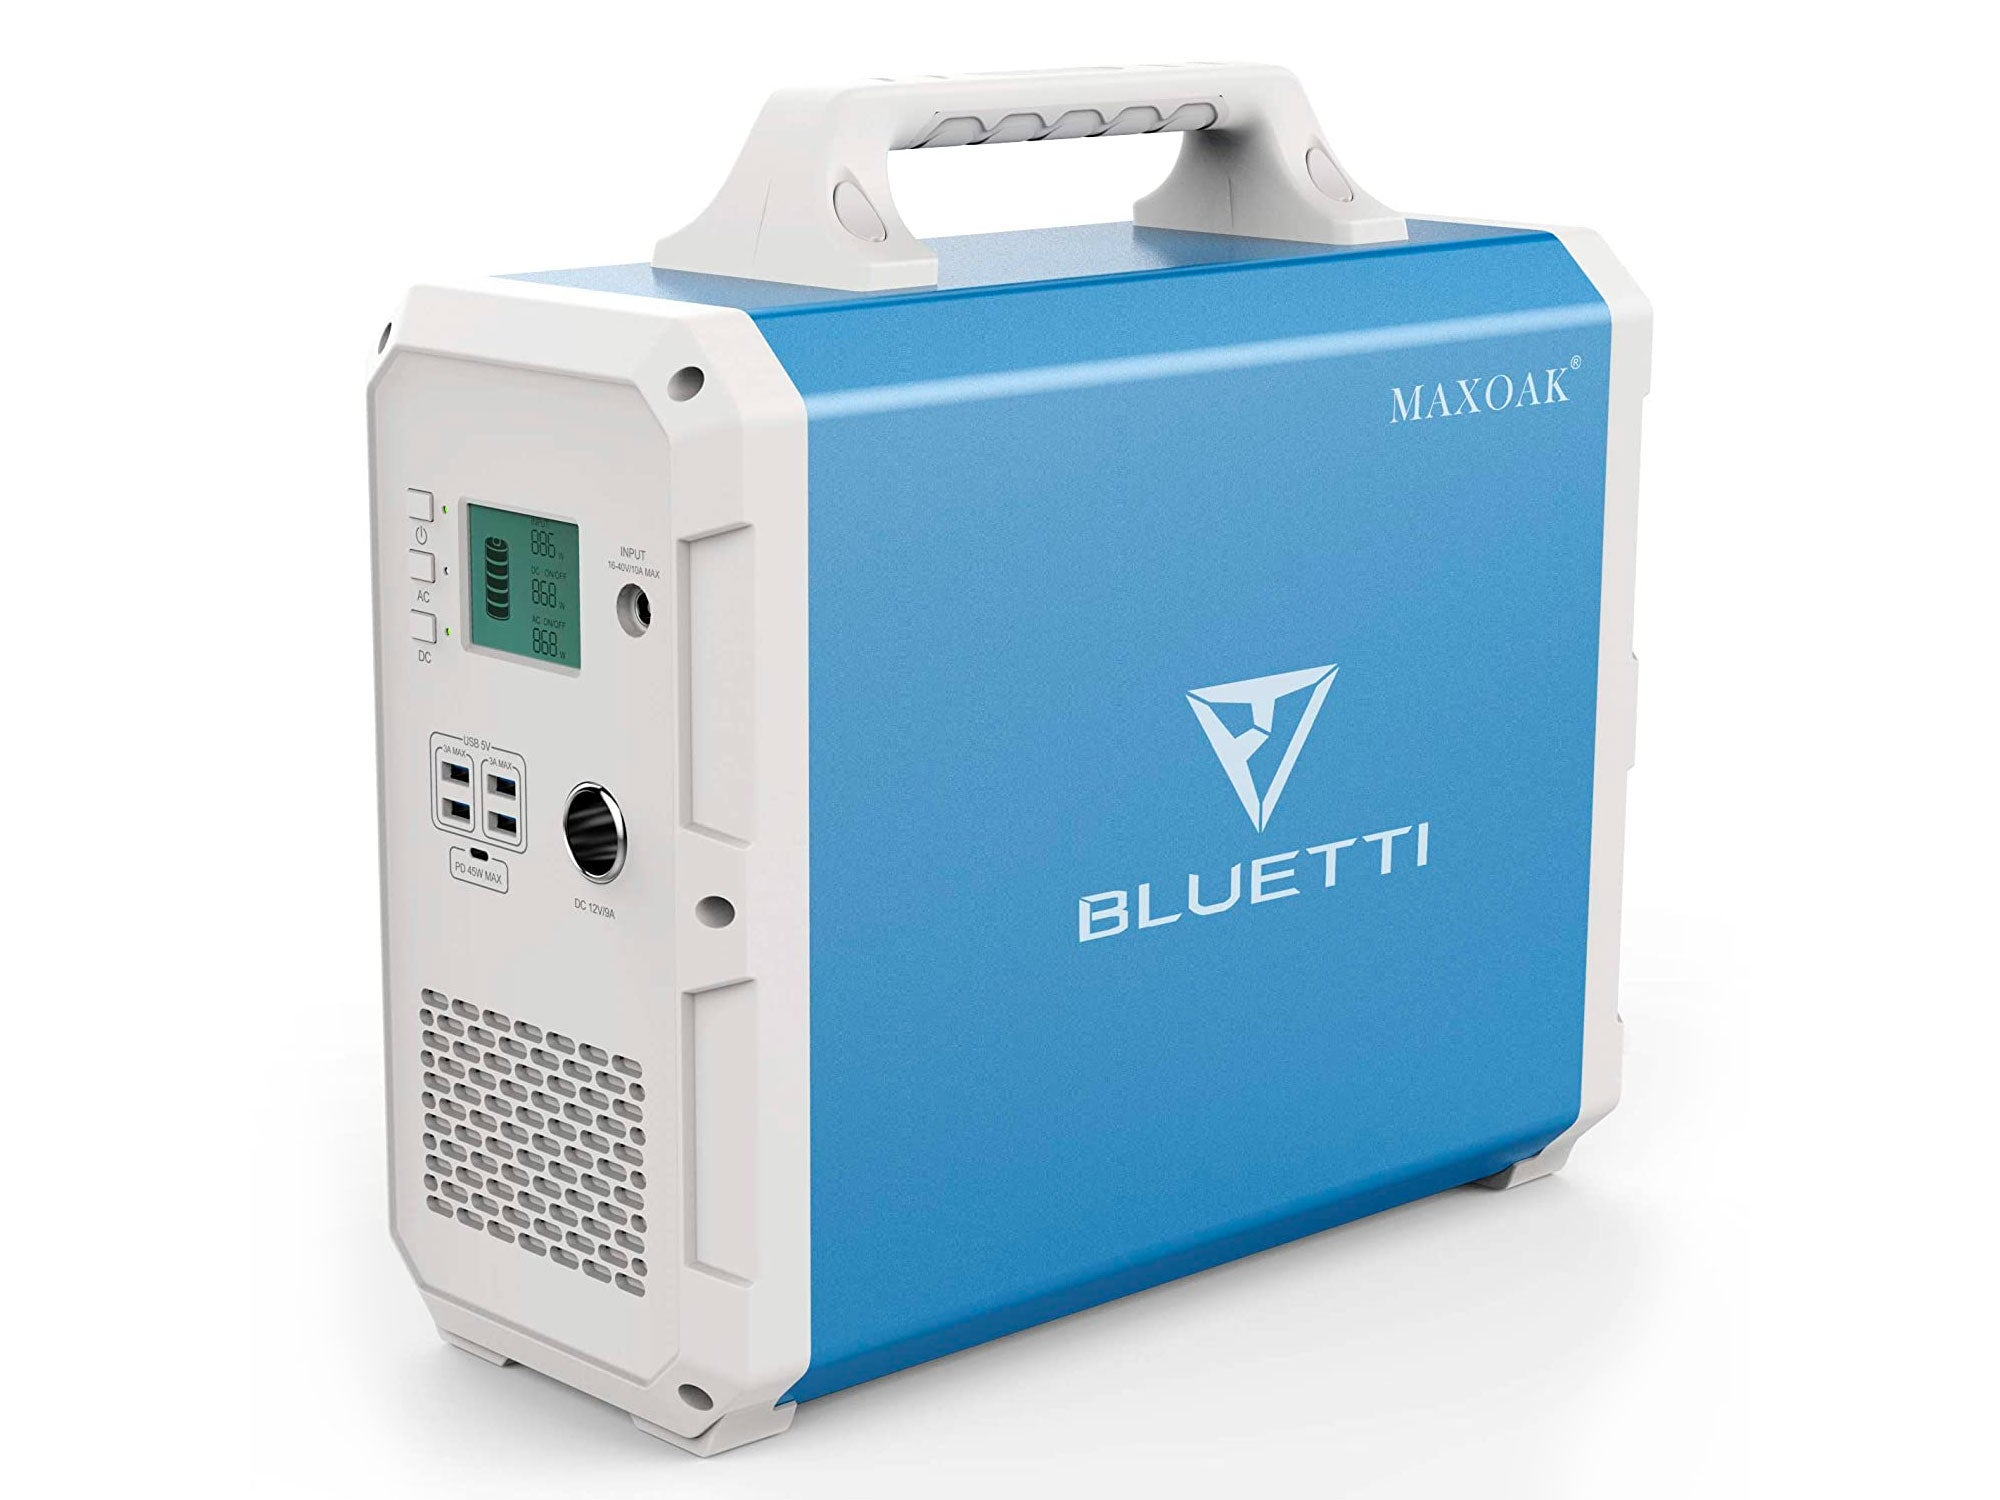 MAXOAK Portable Power Station BLUETTI 1500Wh AC110V/1000W Camping Solar Generator Lithium Emergency Battery Backup with 2 AC outlet Pure Sinewave